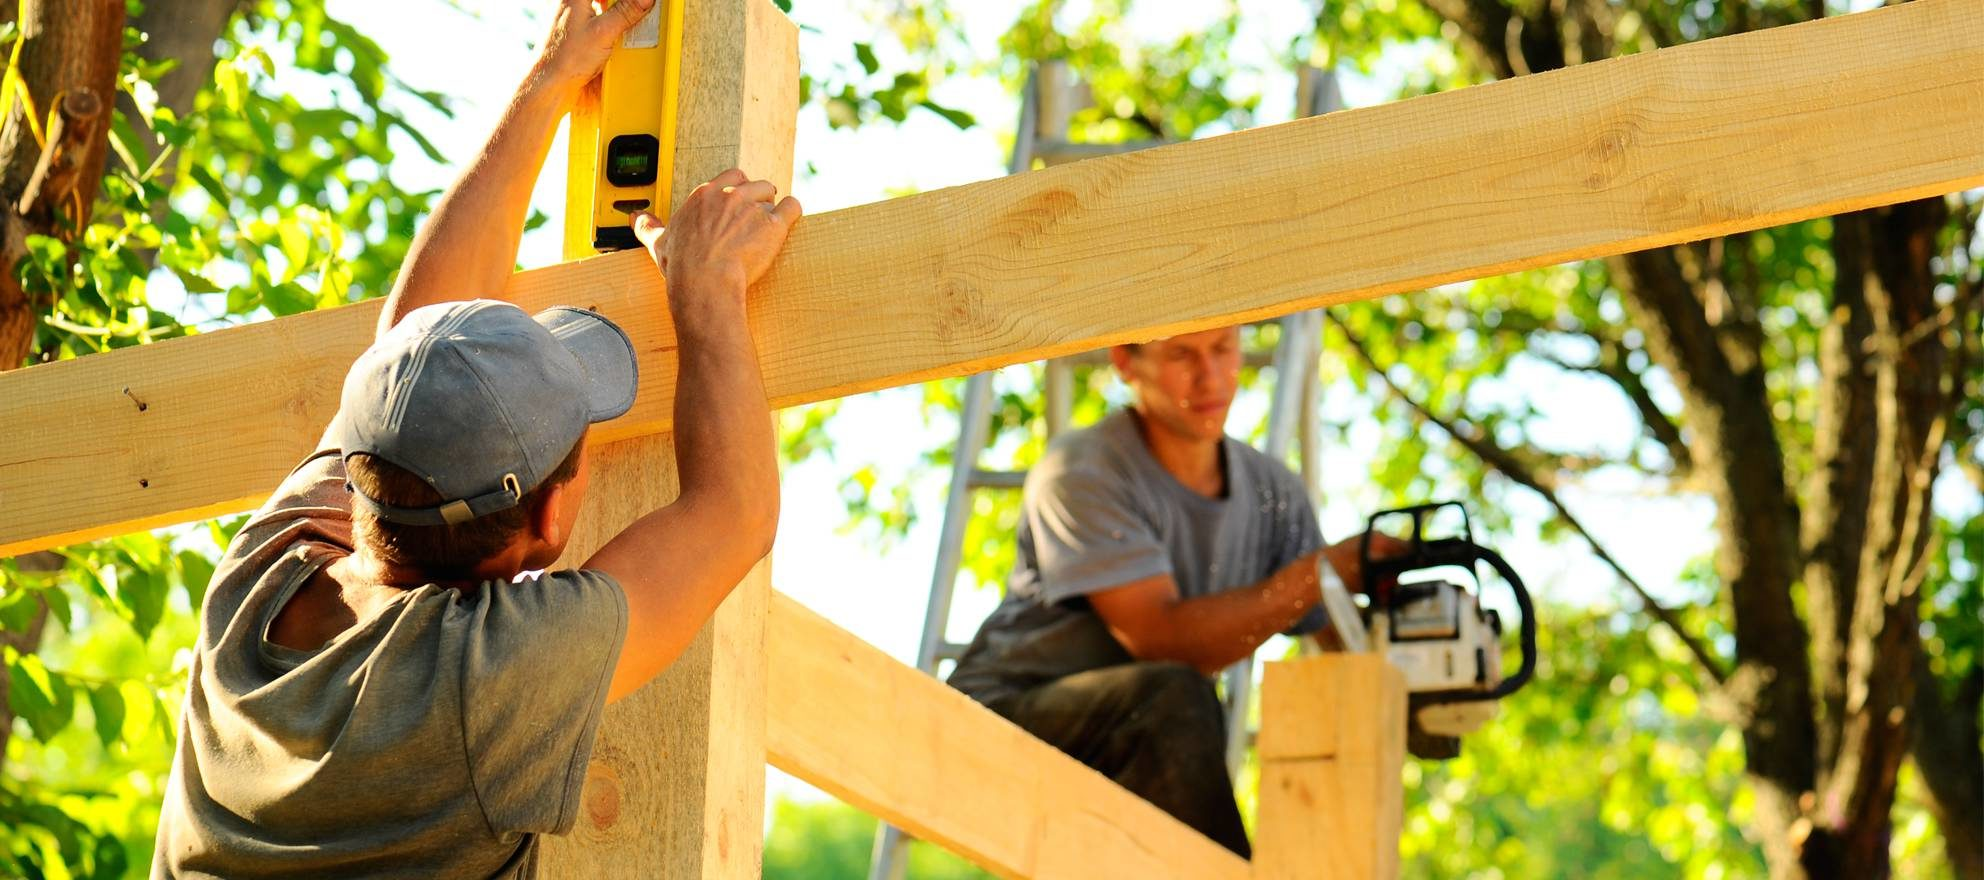 Construction jobs gap is holding back housing starts: NAR study